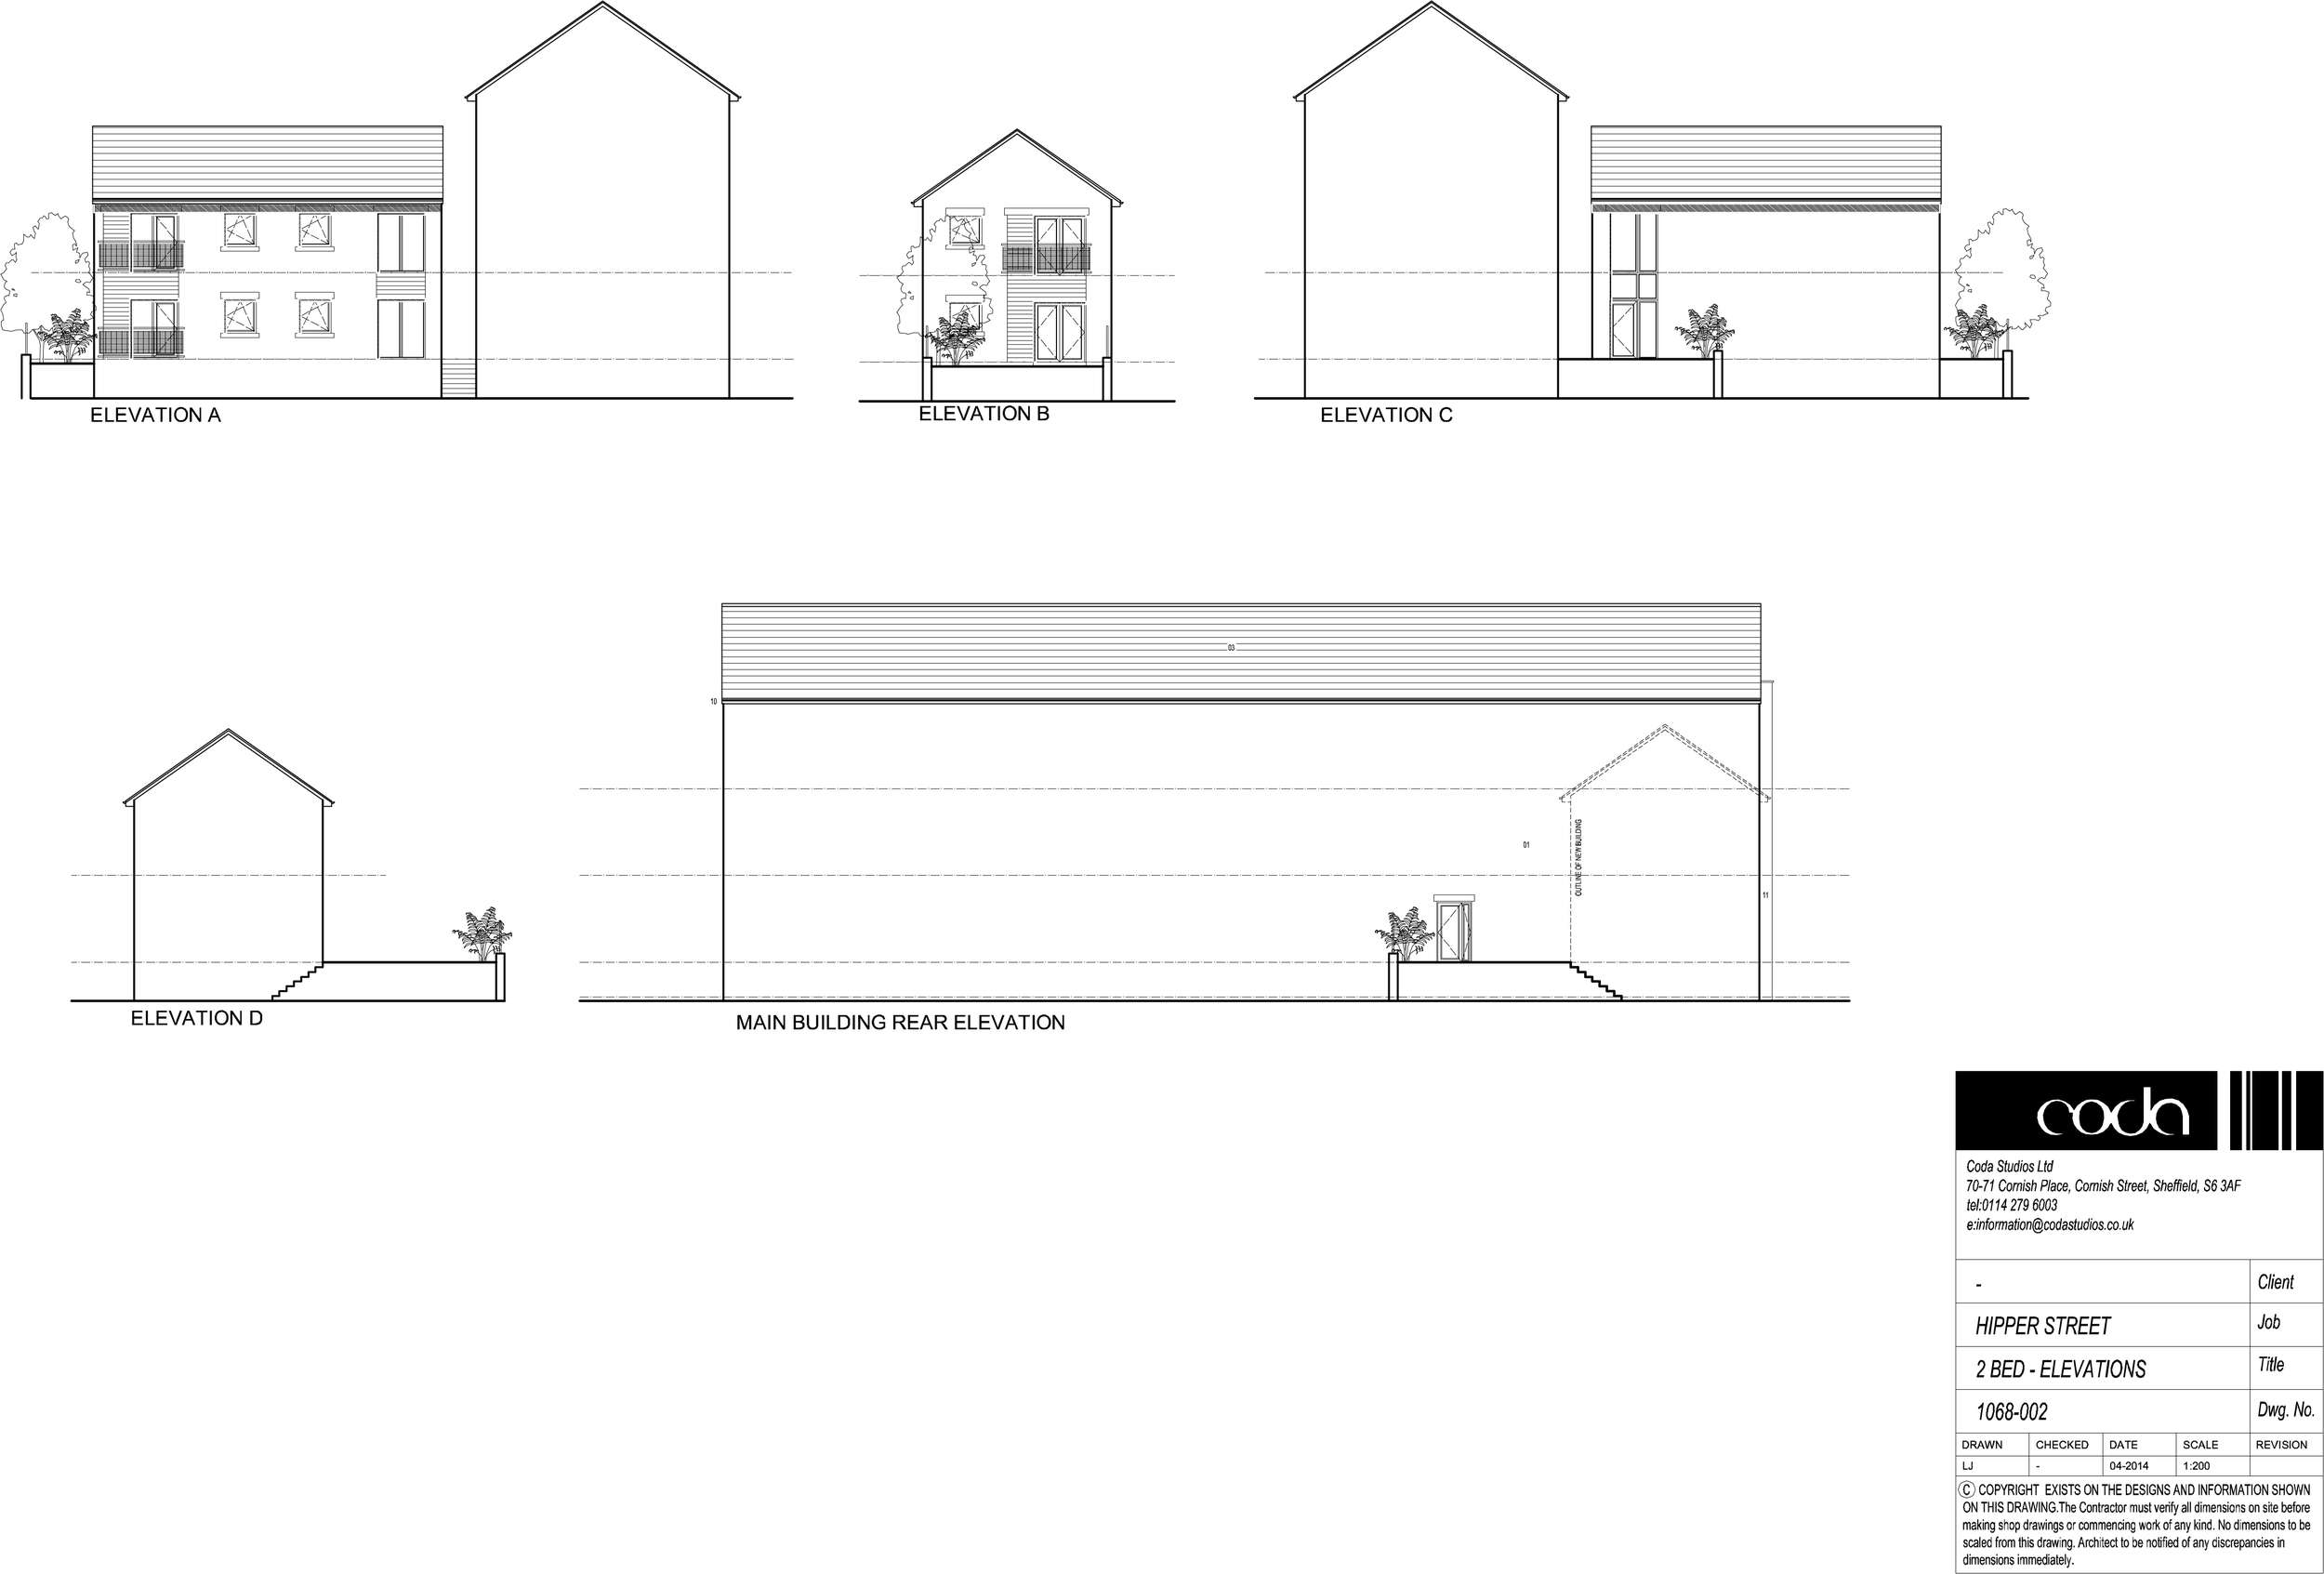 2 Bed Elevations